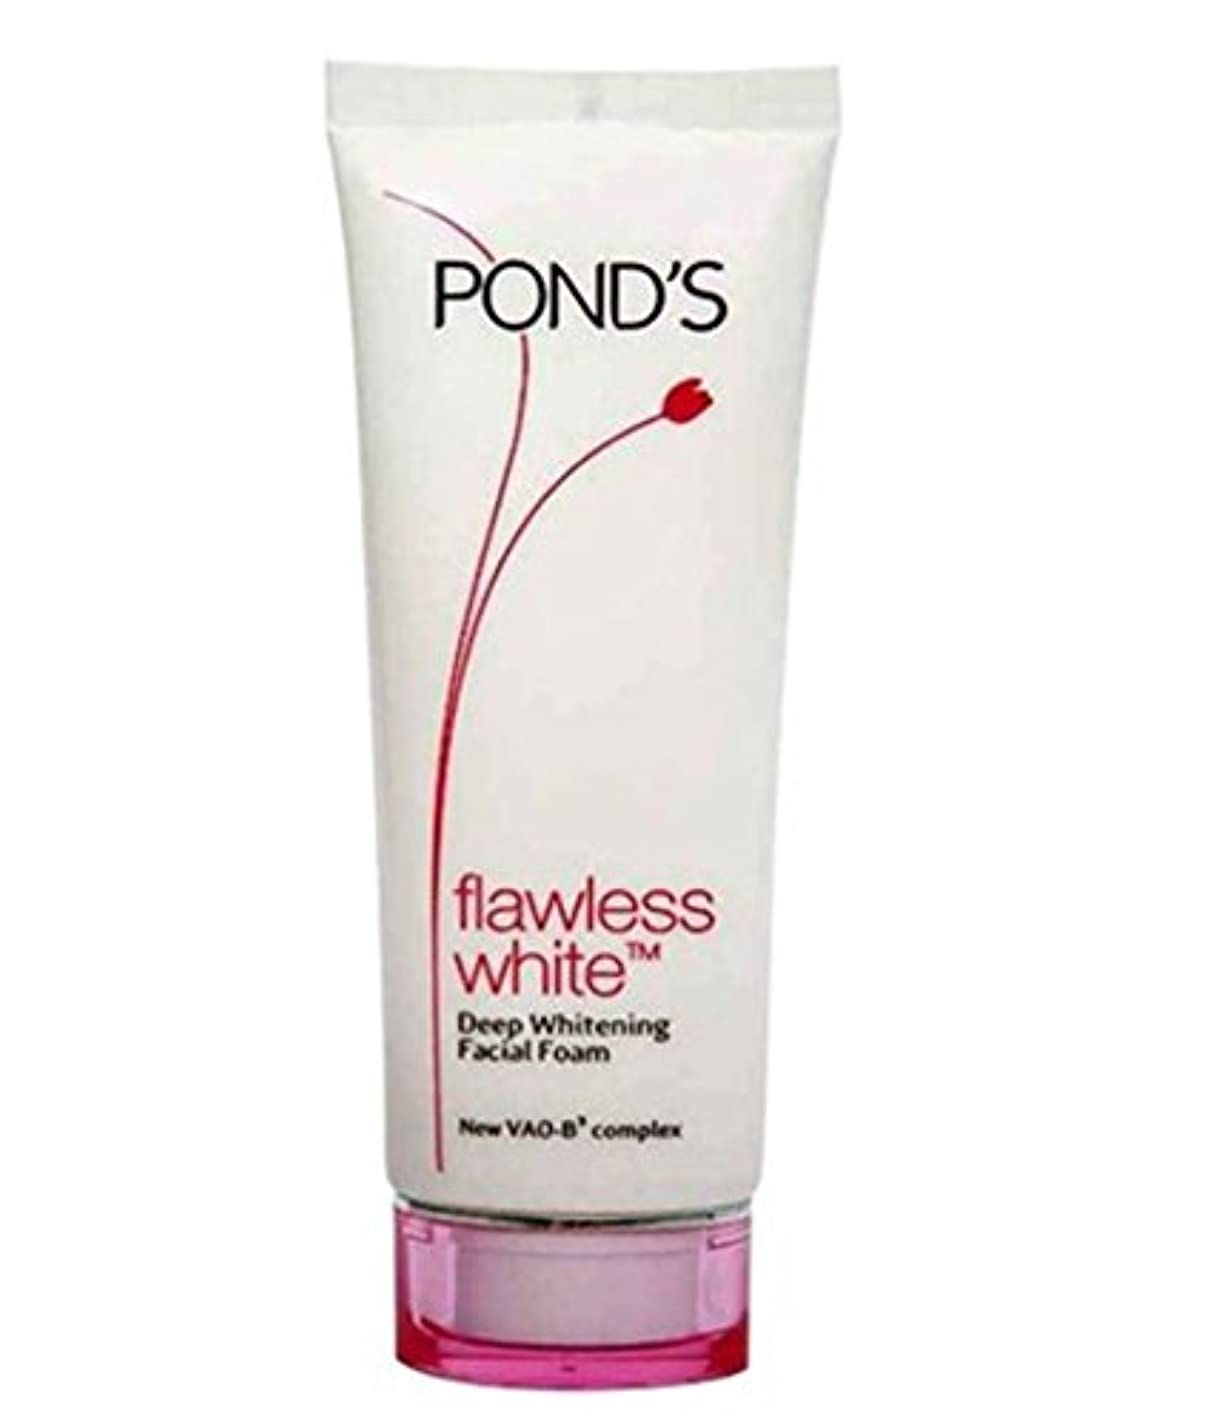 長椅子準備パイロットPond's Flawless White Deep Whitening Facial Foam, 100g